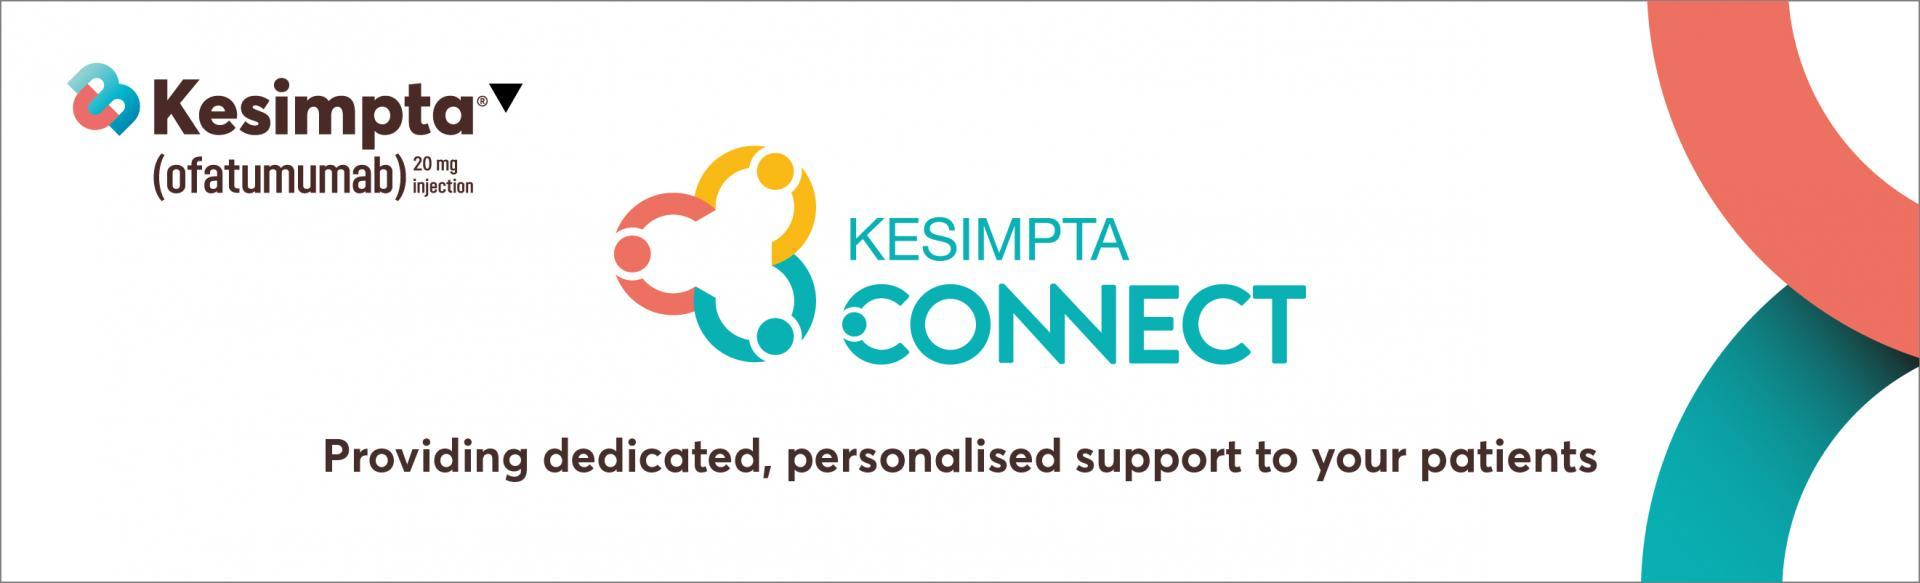 Kesimpya Connect – Providing dedicated, personalised support to your patients